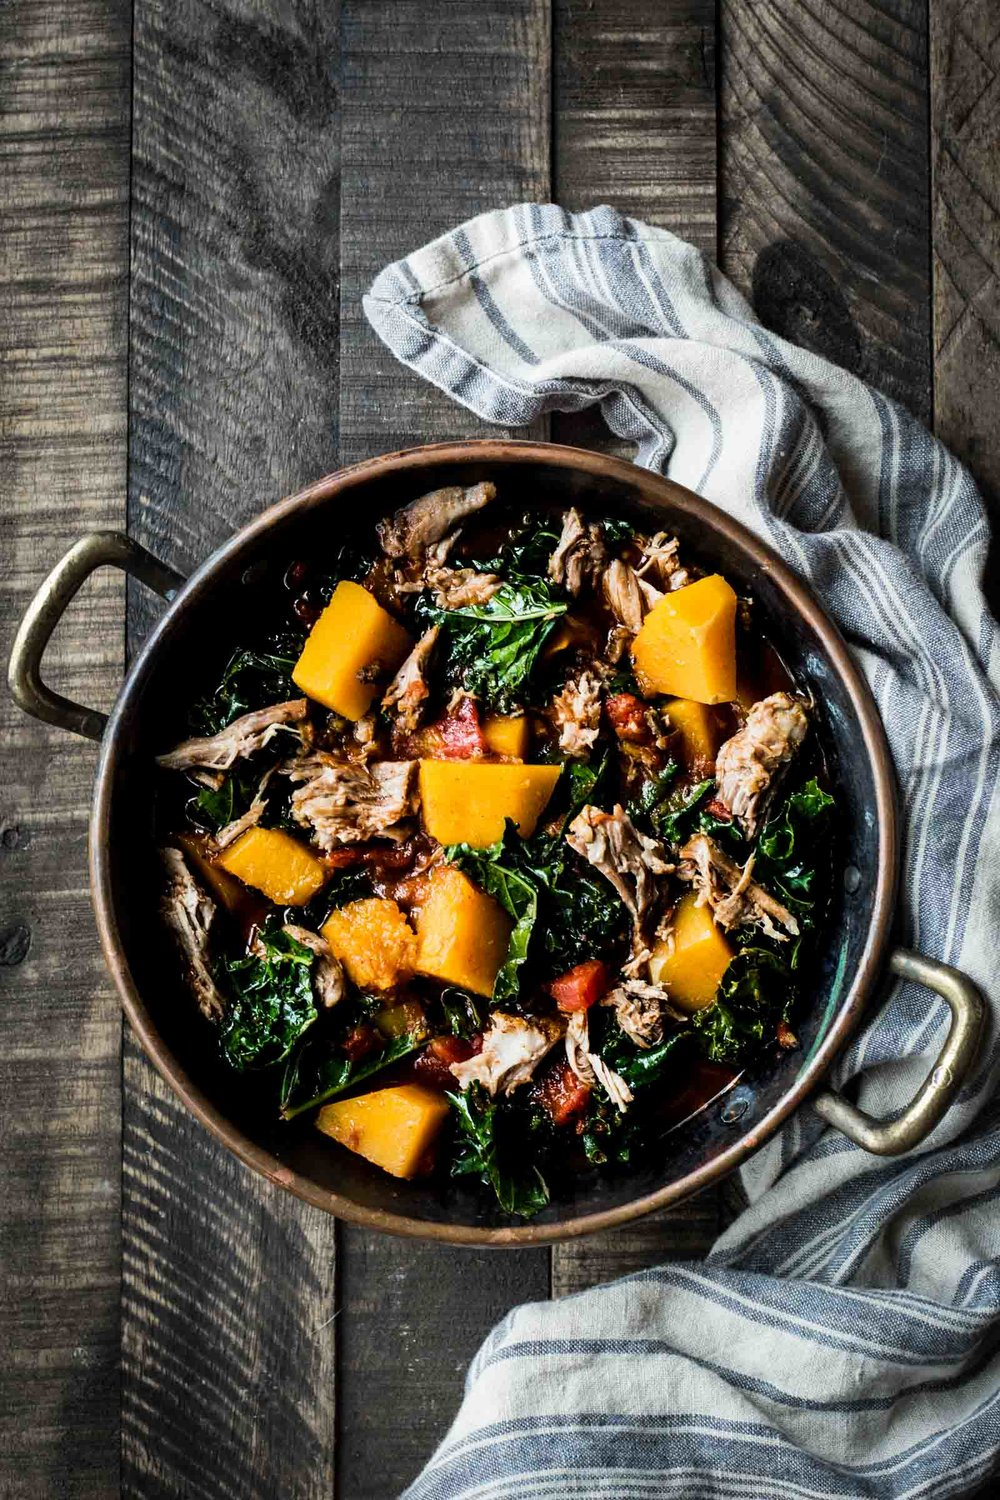 Pork and Winter Squash Stew (you can sub the spinach for the kale in this recipe)